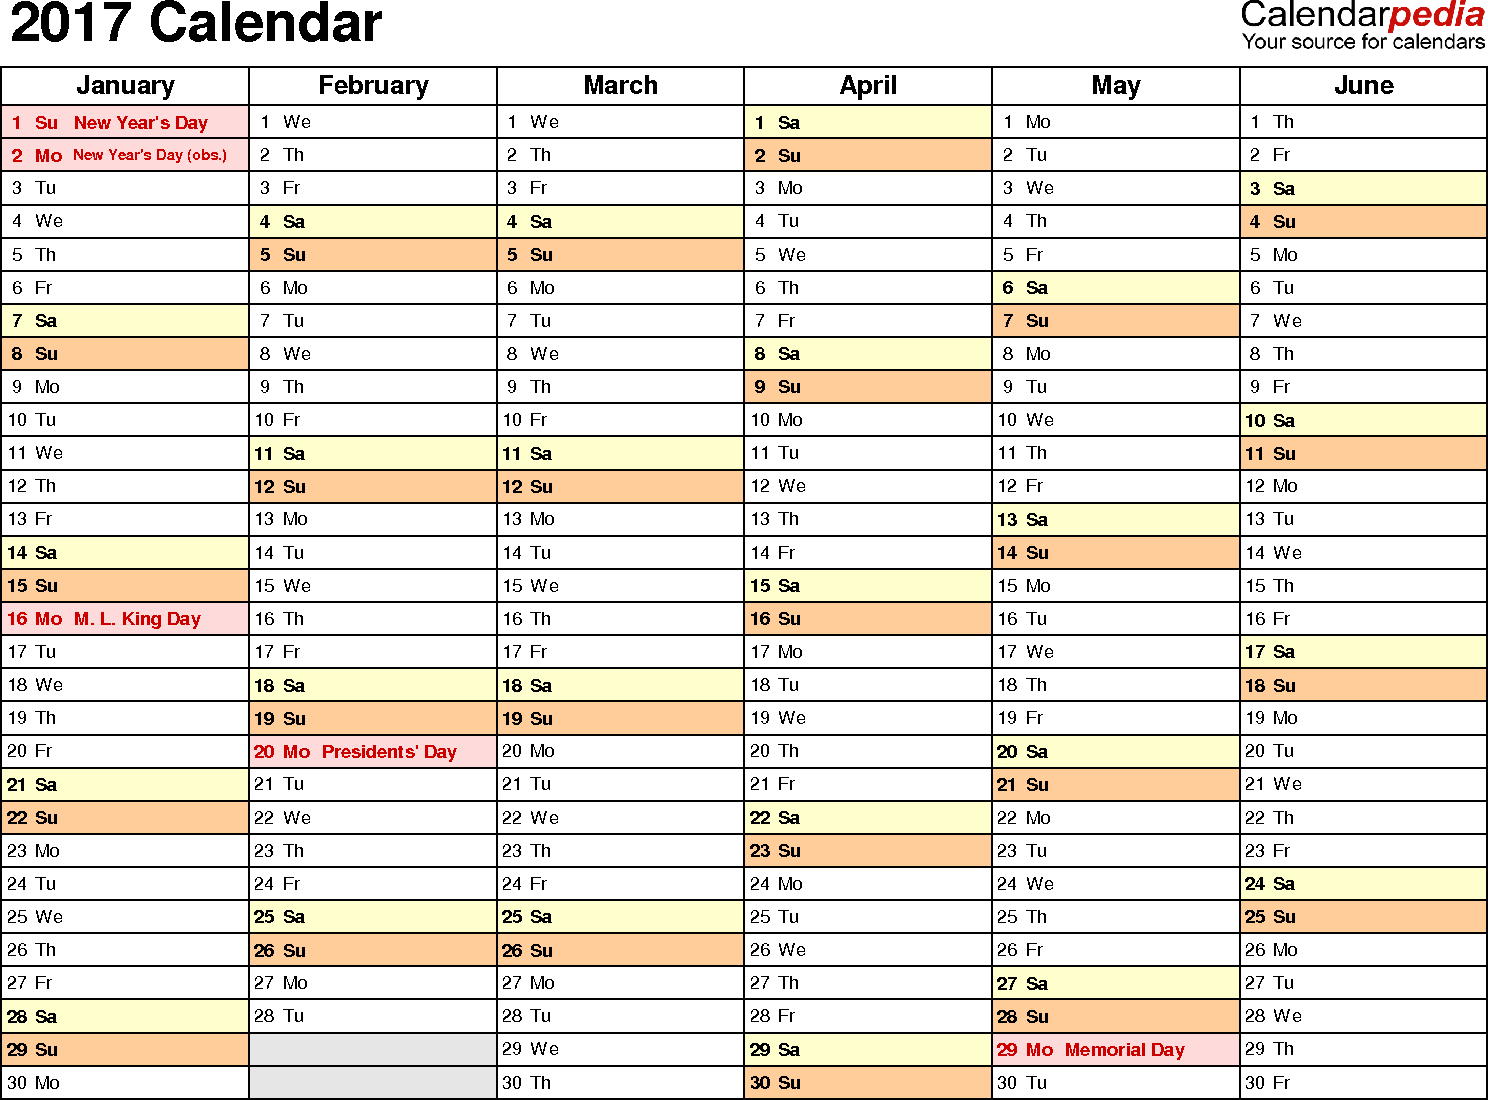 Ediblewildsus  Personable  Calendar  Download  Free Printable Excel Templates Xls With Goodlooking Template   Calendar For Excel Months Horizontally  Pages Landscape Orientation With Charming How Do I Remove Duplicates In Excel Also Excel Engery In Addition Excel Central And Autofilter Excel As Well As Make A Dropdown In Excel Additionally Excel Subtract Formula From Calendarpediacom With Ediblewildsus  Goodlooking  Calendar  Download  Free Printable Excel Templates Xls With Charming Template   Calendar For Excel Months Horizontally  Pages Landscape Orientation And Personable How Do I Remove Duplicates In Excel Also Excel Engery In Addition Excel Central From Calendarpediacom